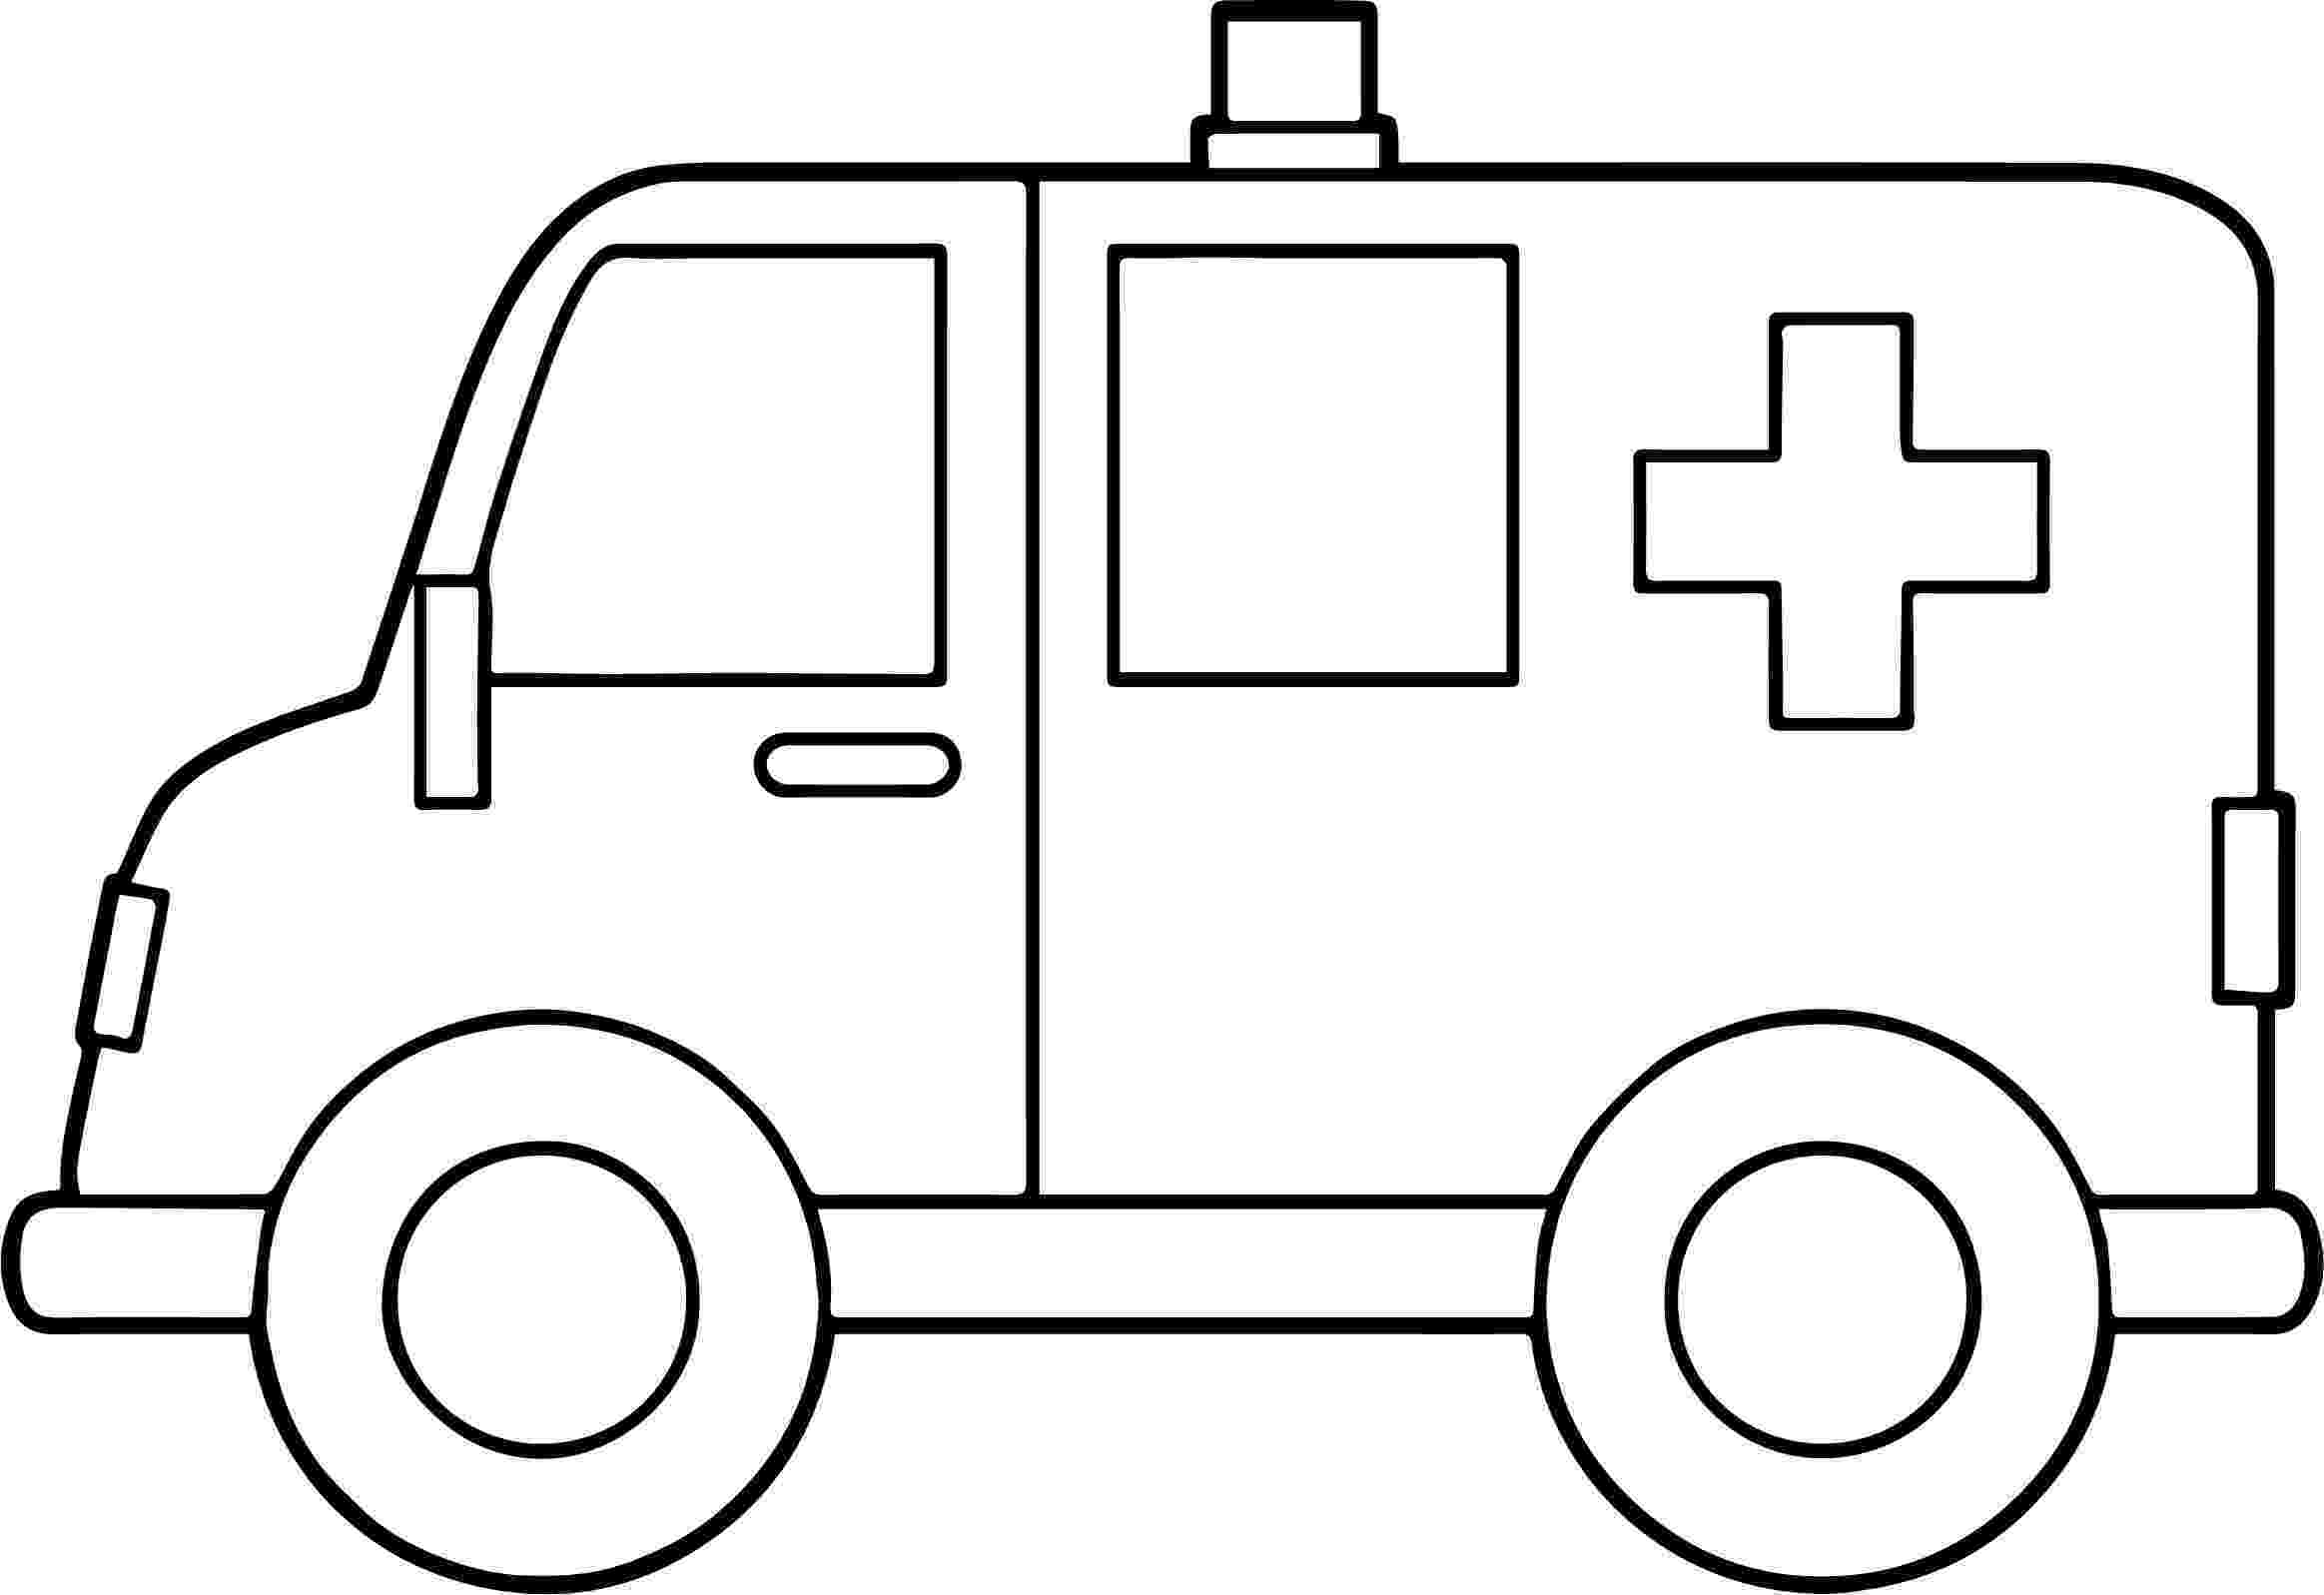 ambulance pictures to color ambulance coloring pages free printable for primaryschool to color pictures ambulance